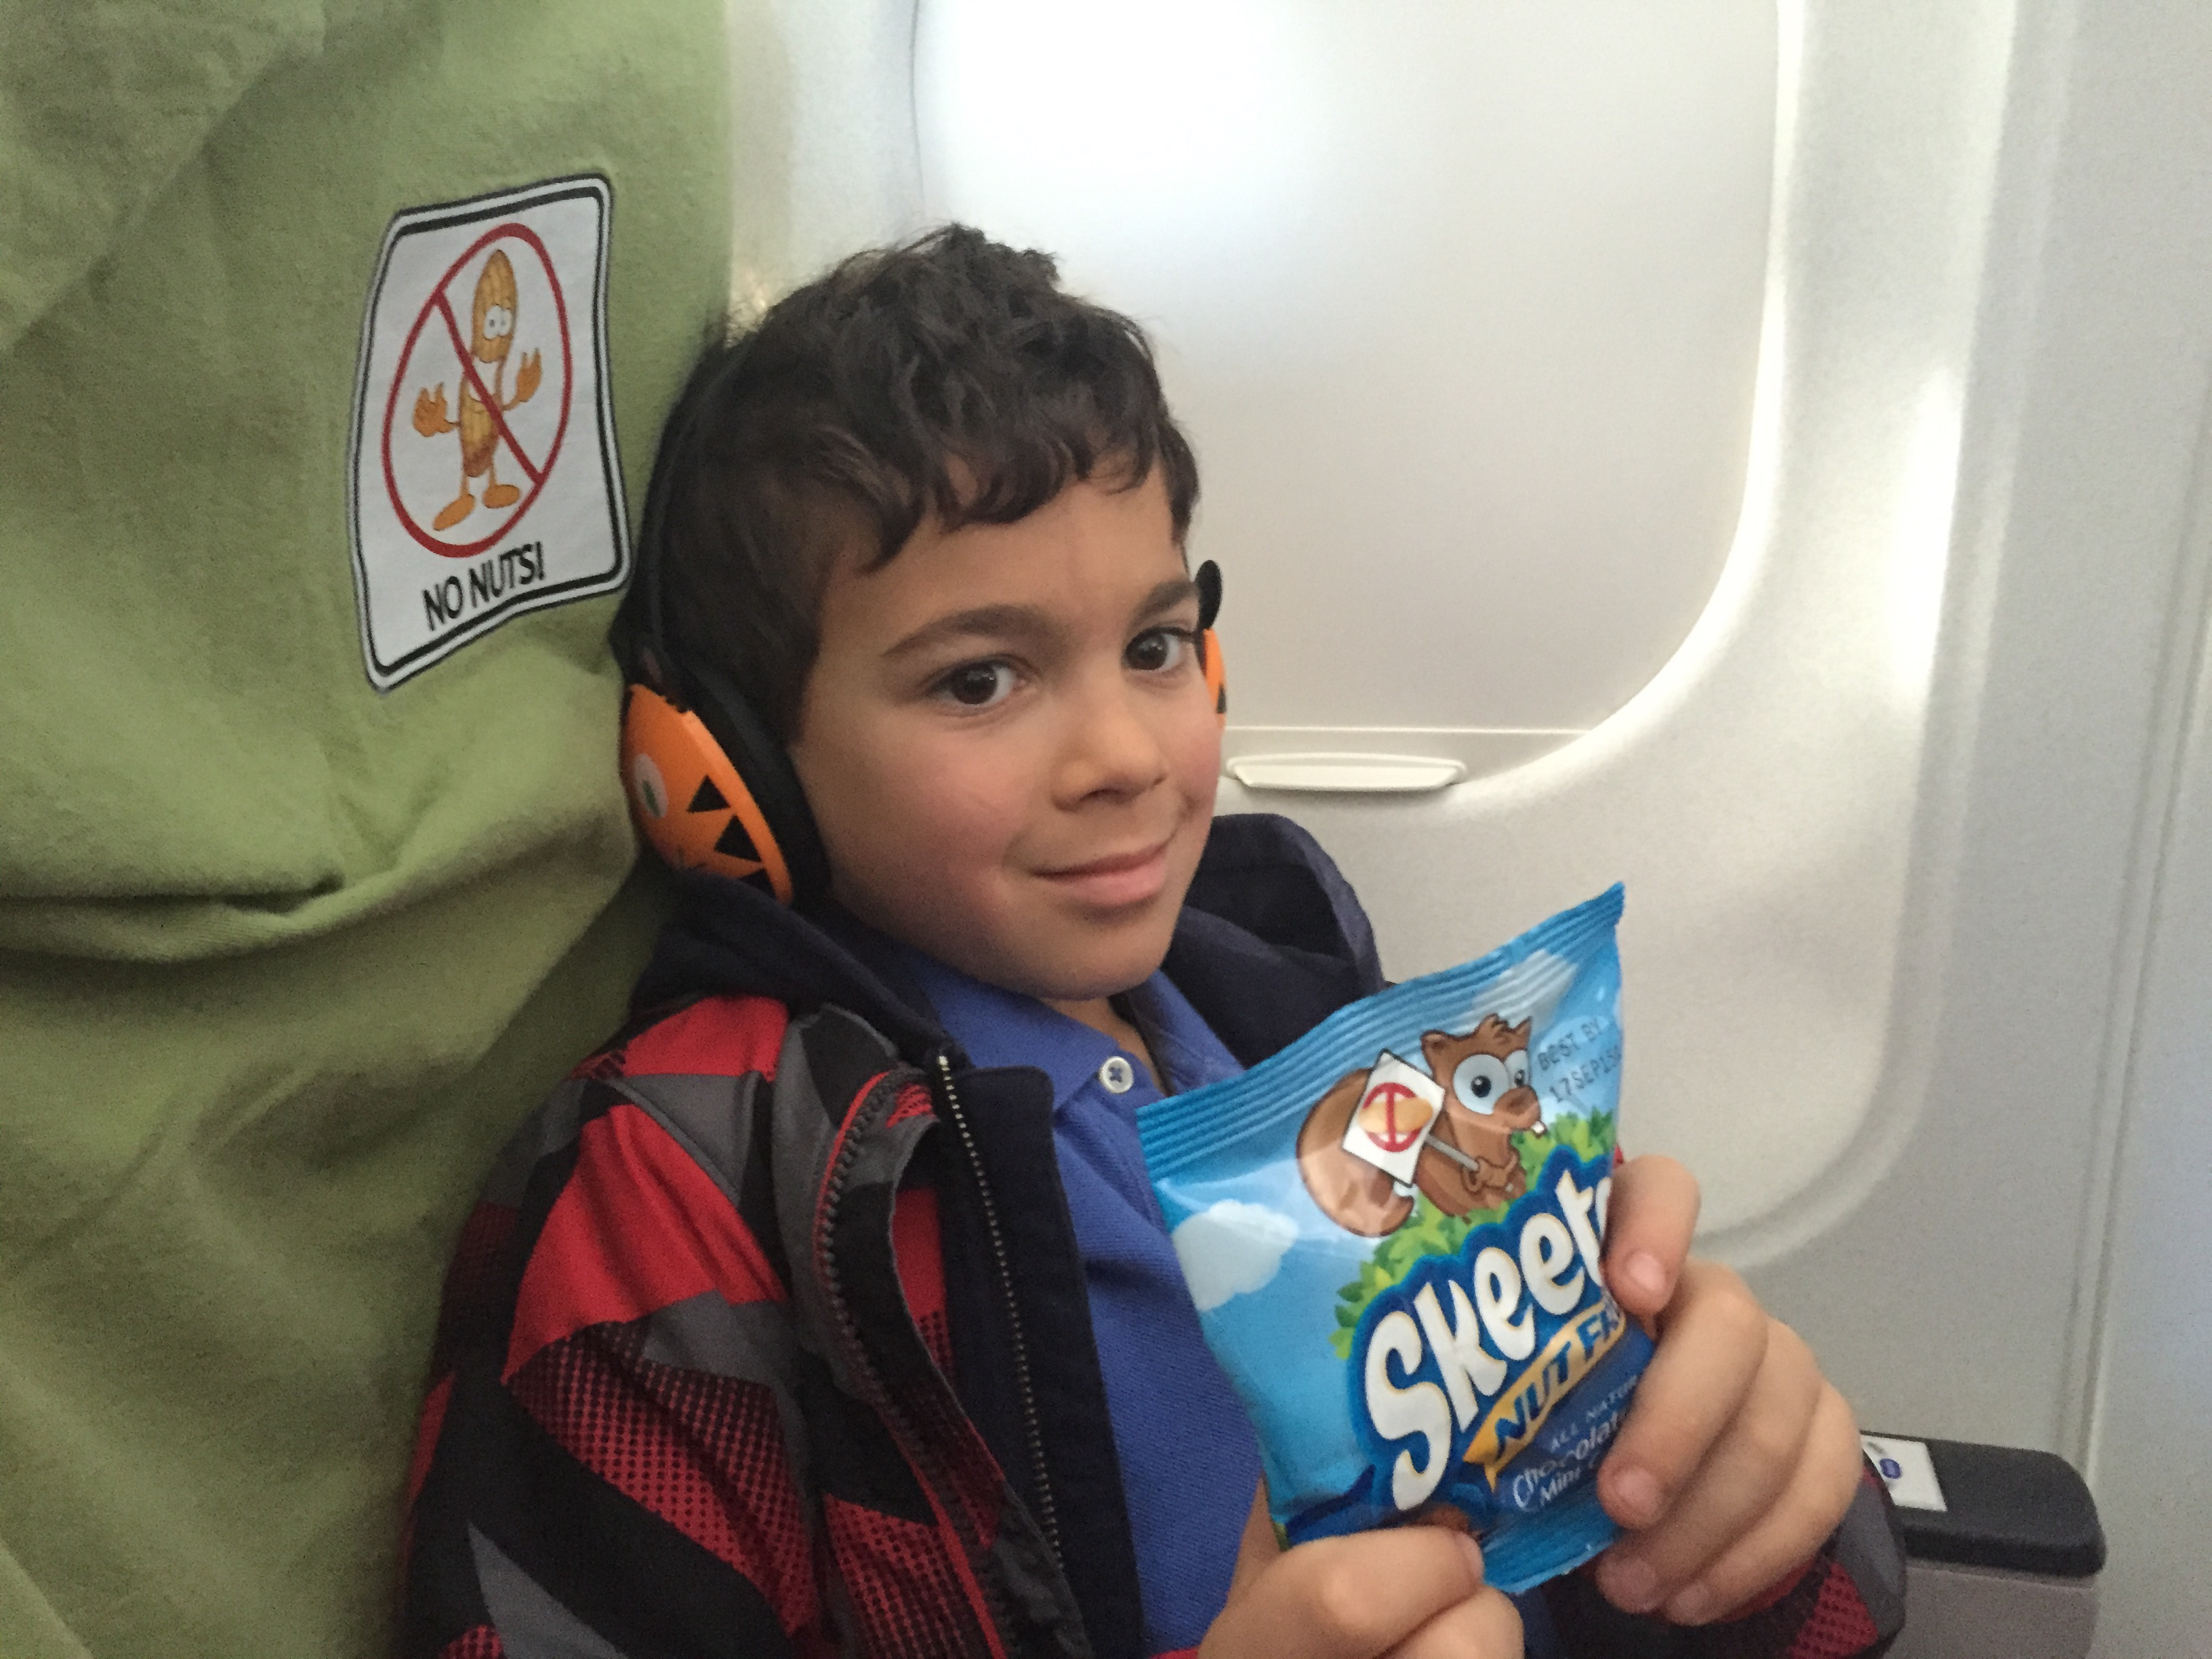 My peanut allergic son feeling happy and safe flying JetBlue Airways.